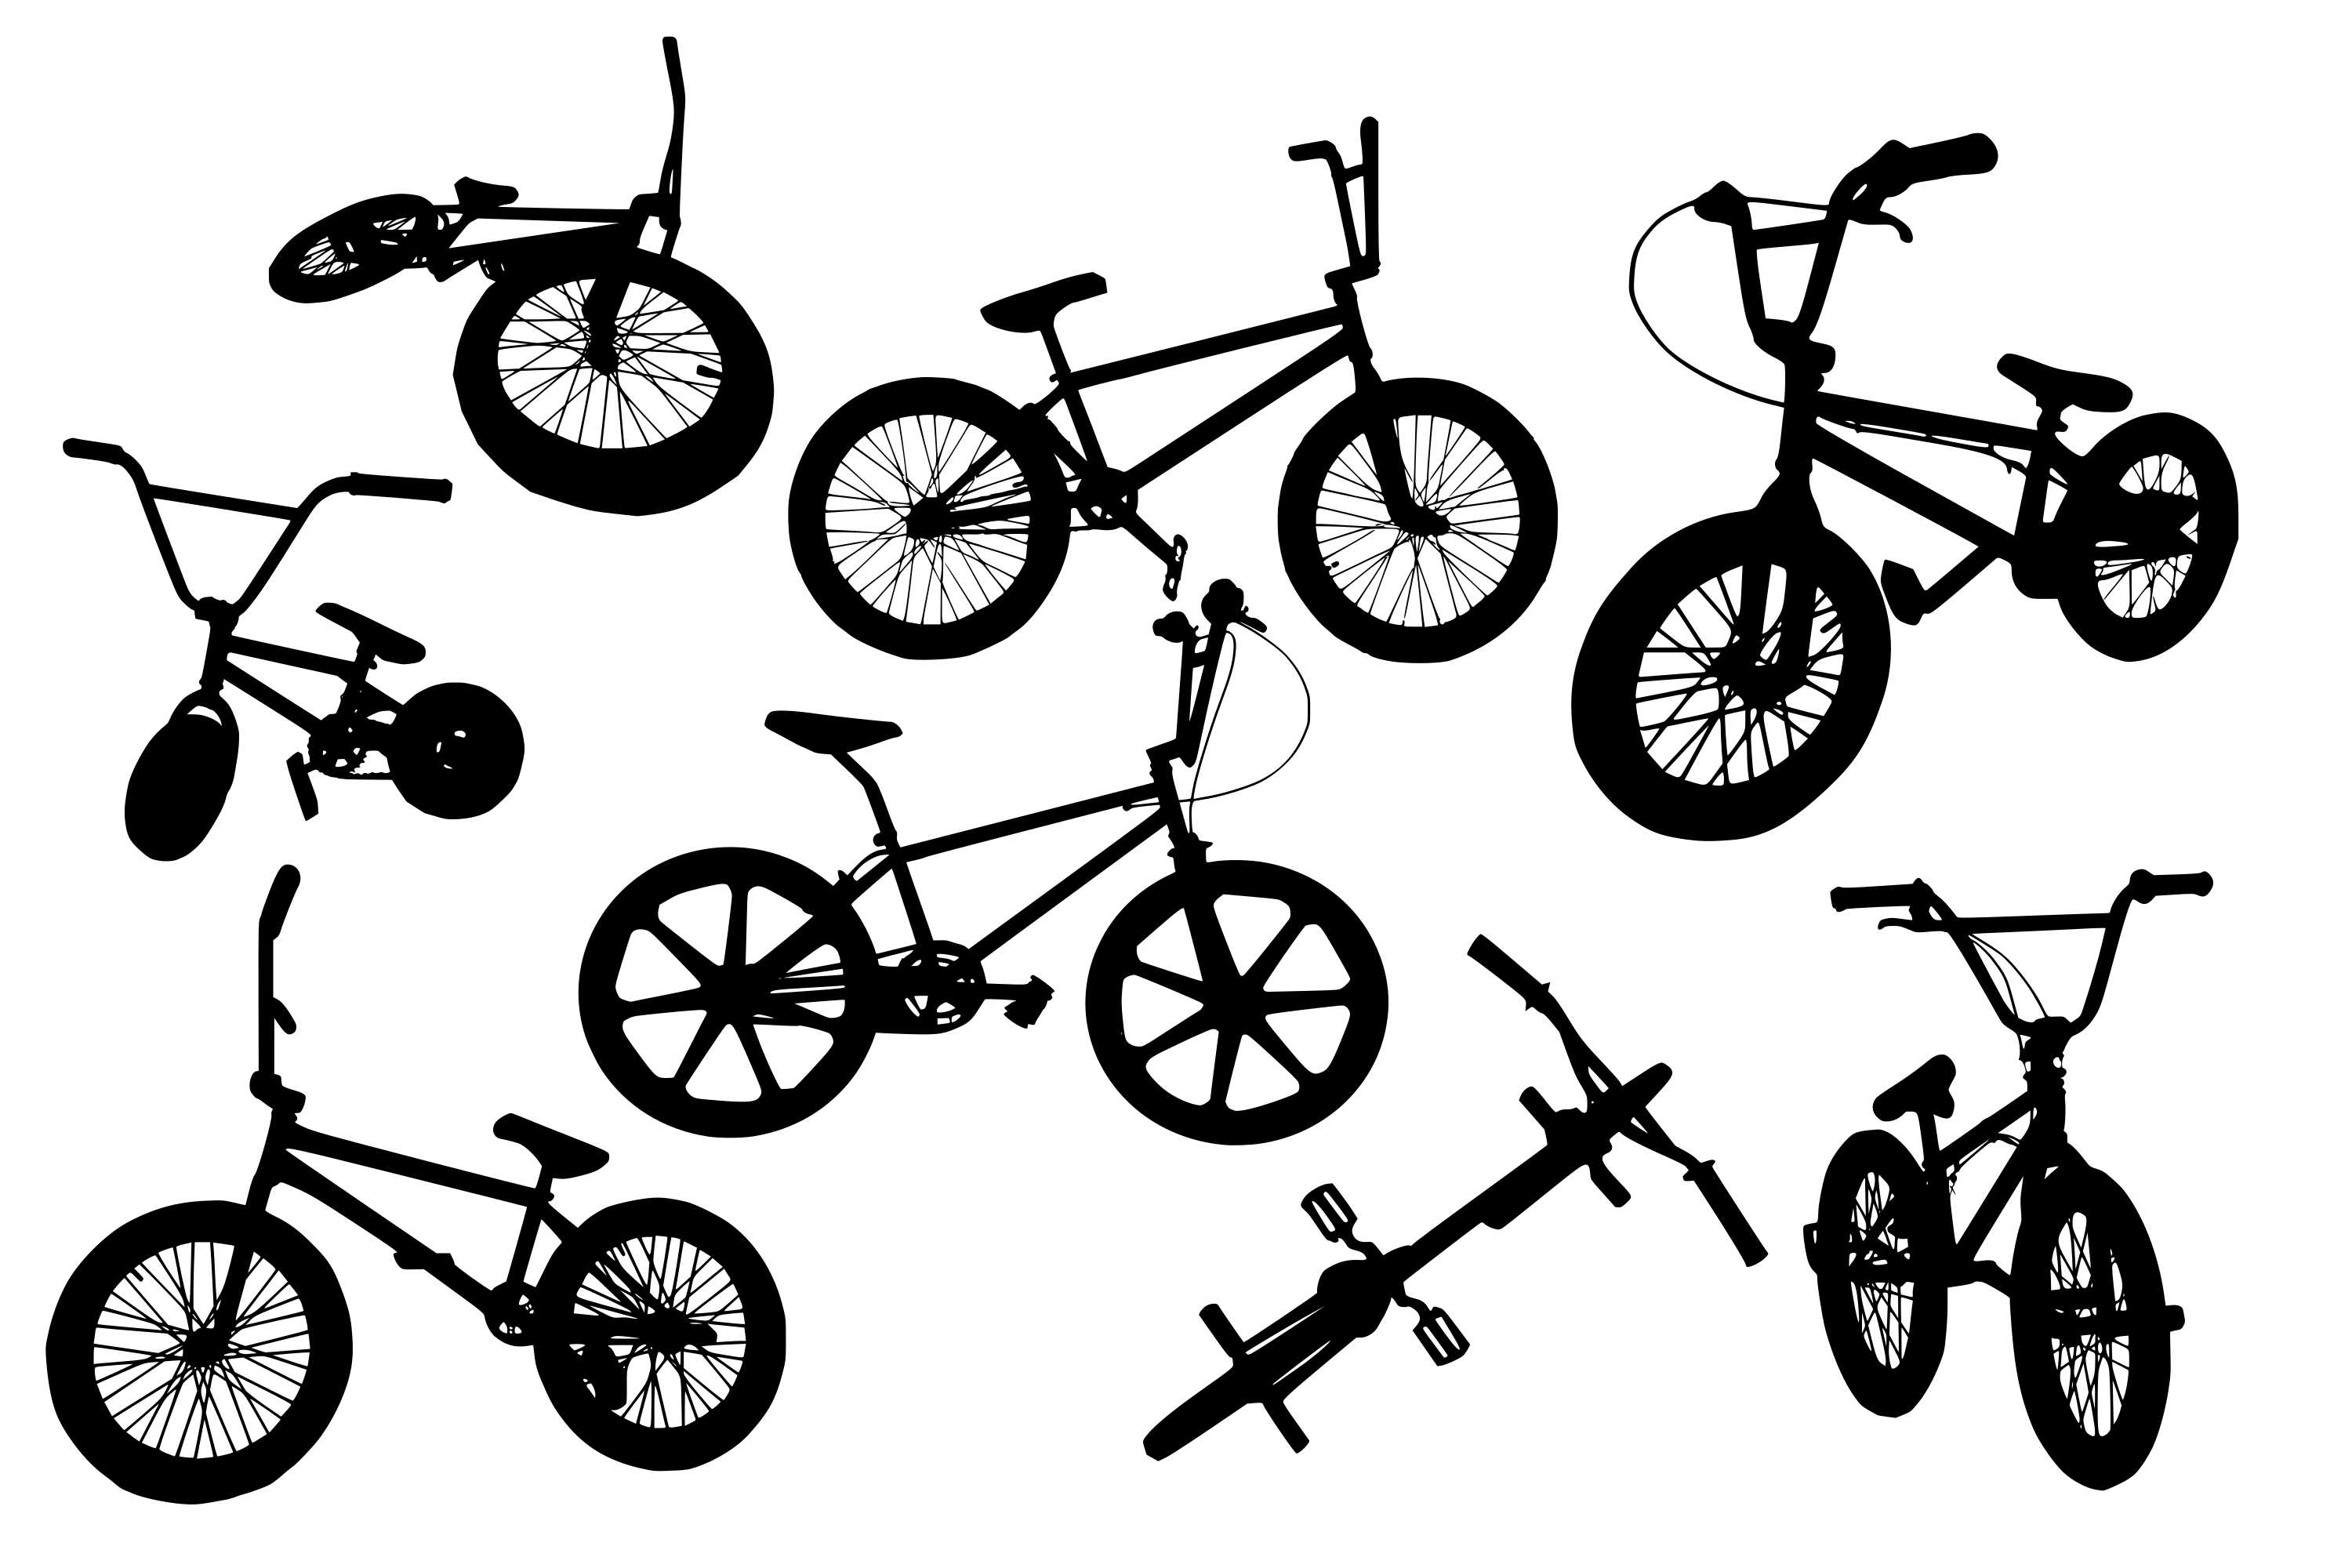 8-bmx-bike-silhouette-cover.jpg